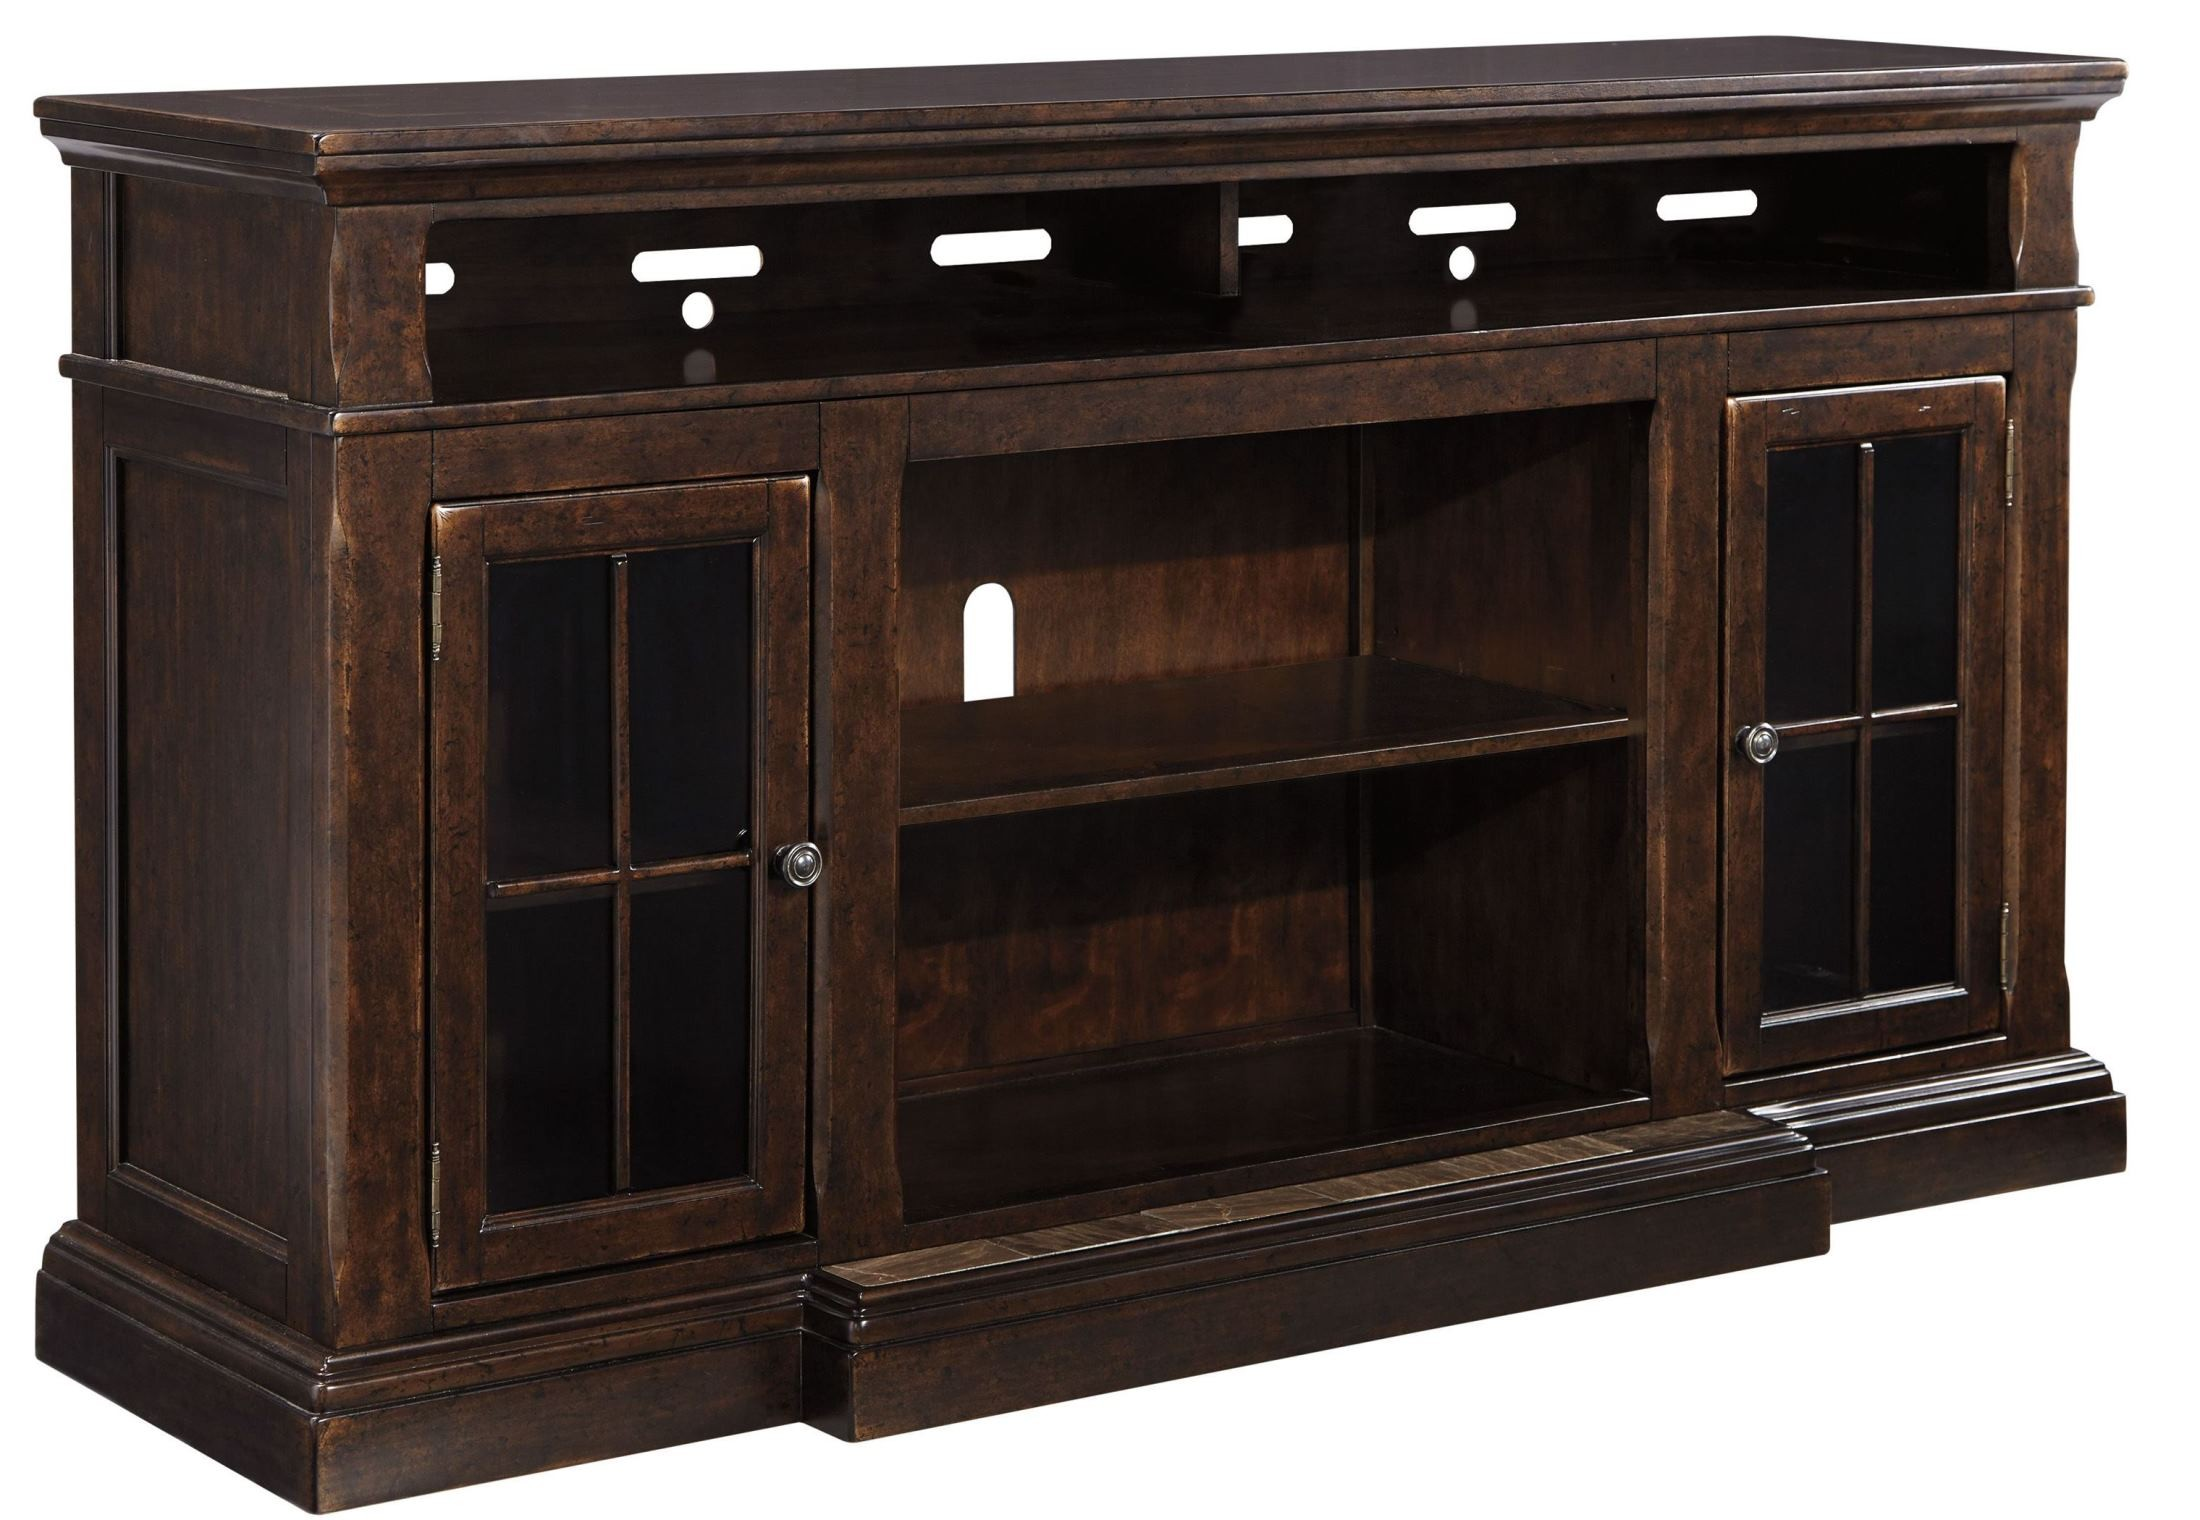 Roddinton Extra Large Tv Stand From Ashley W701 88